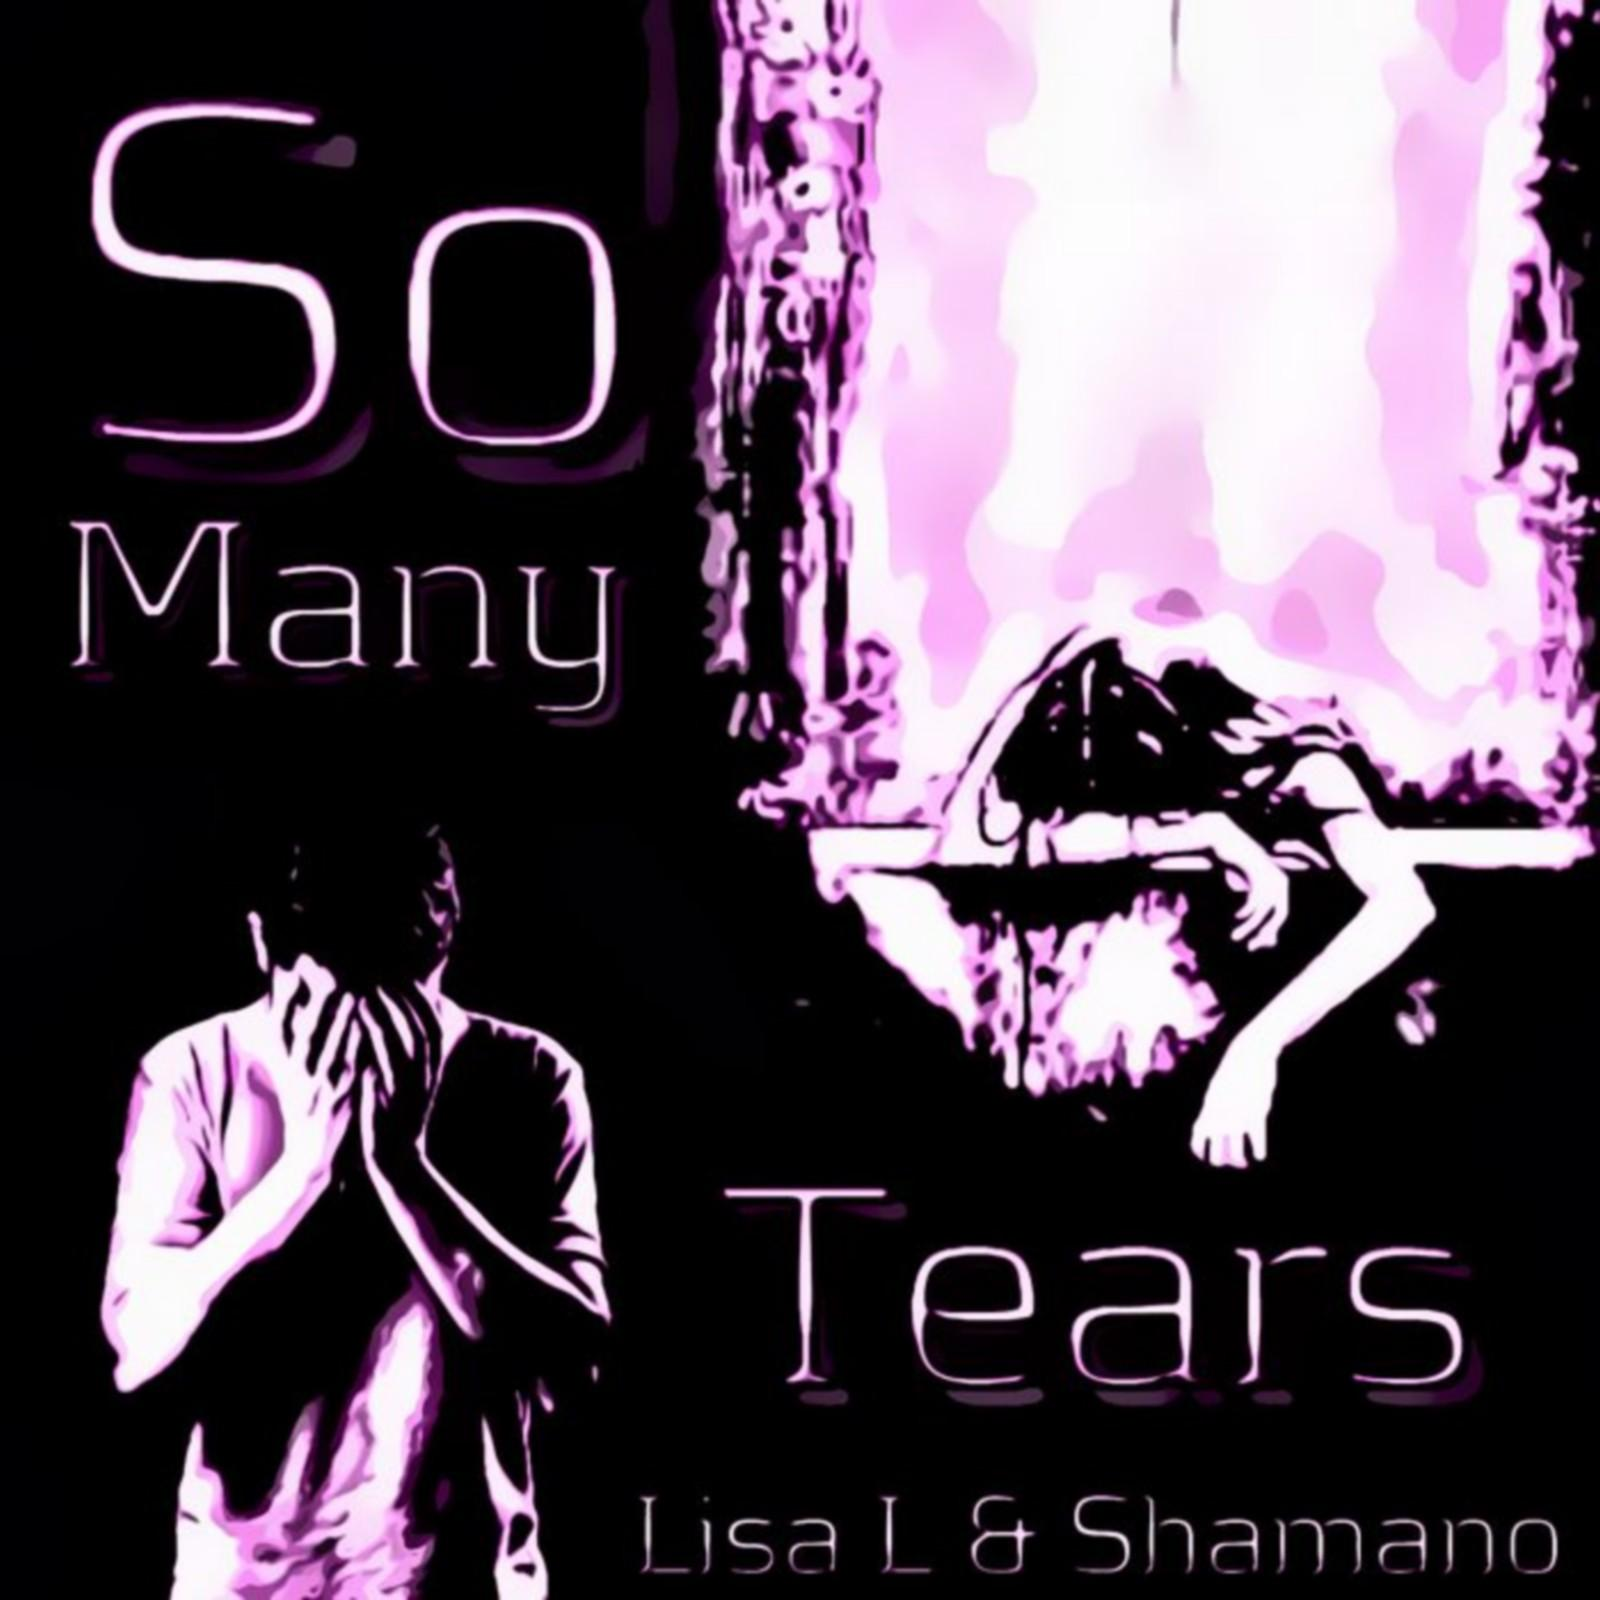 Lisa L & Shamano - So many tears